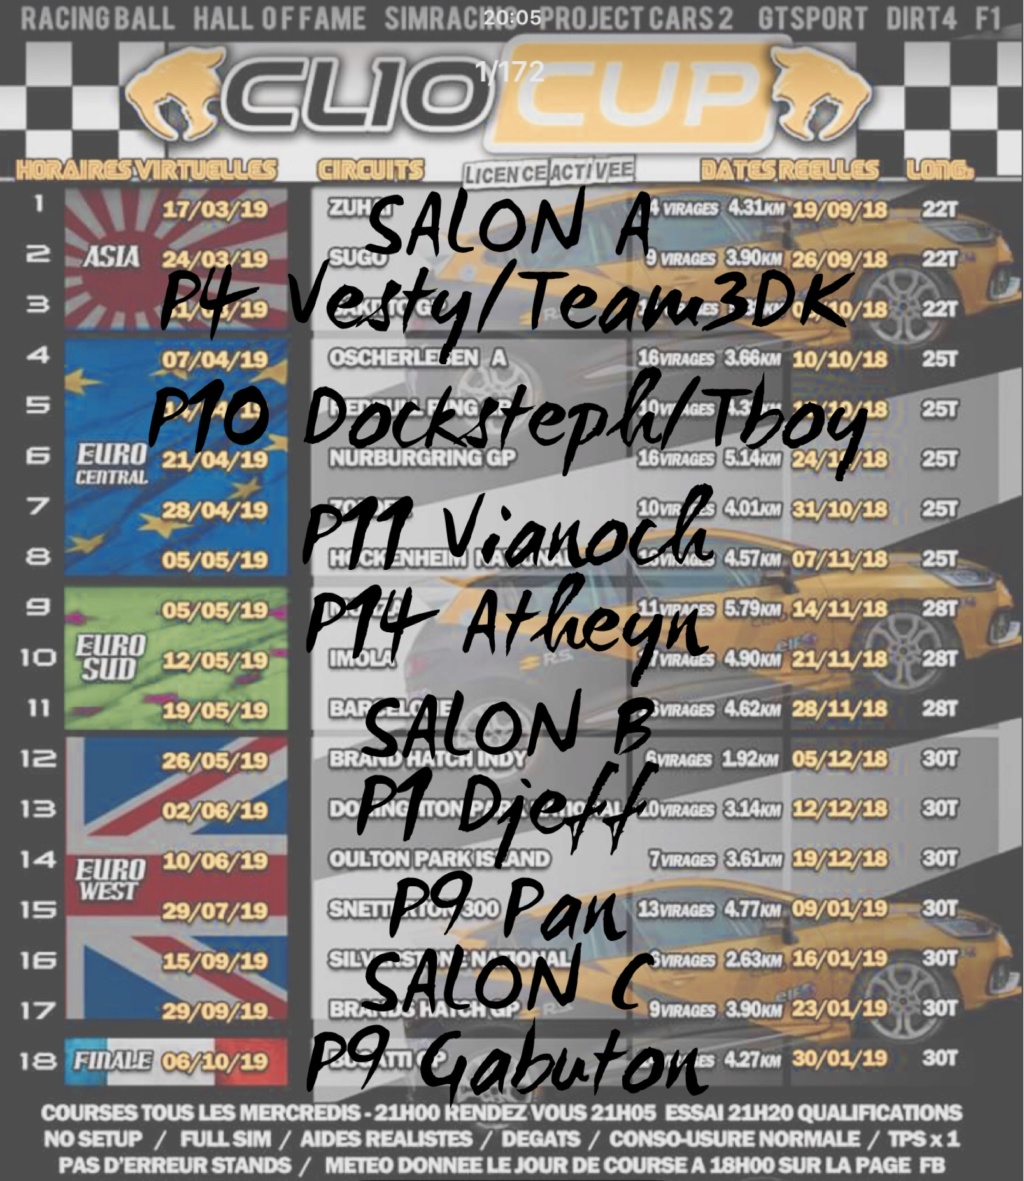 CLIO CUP 2018 by Racing Ball 364c8a10